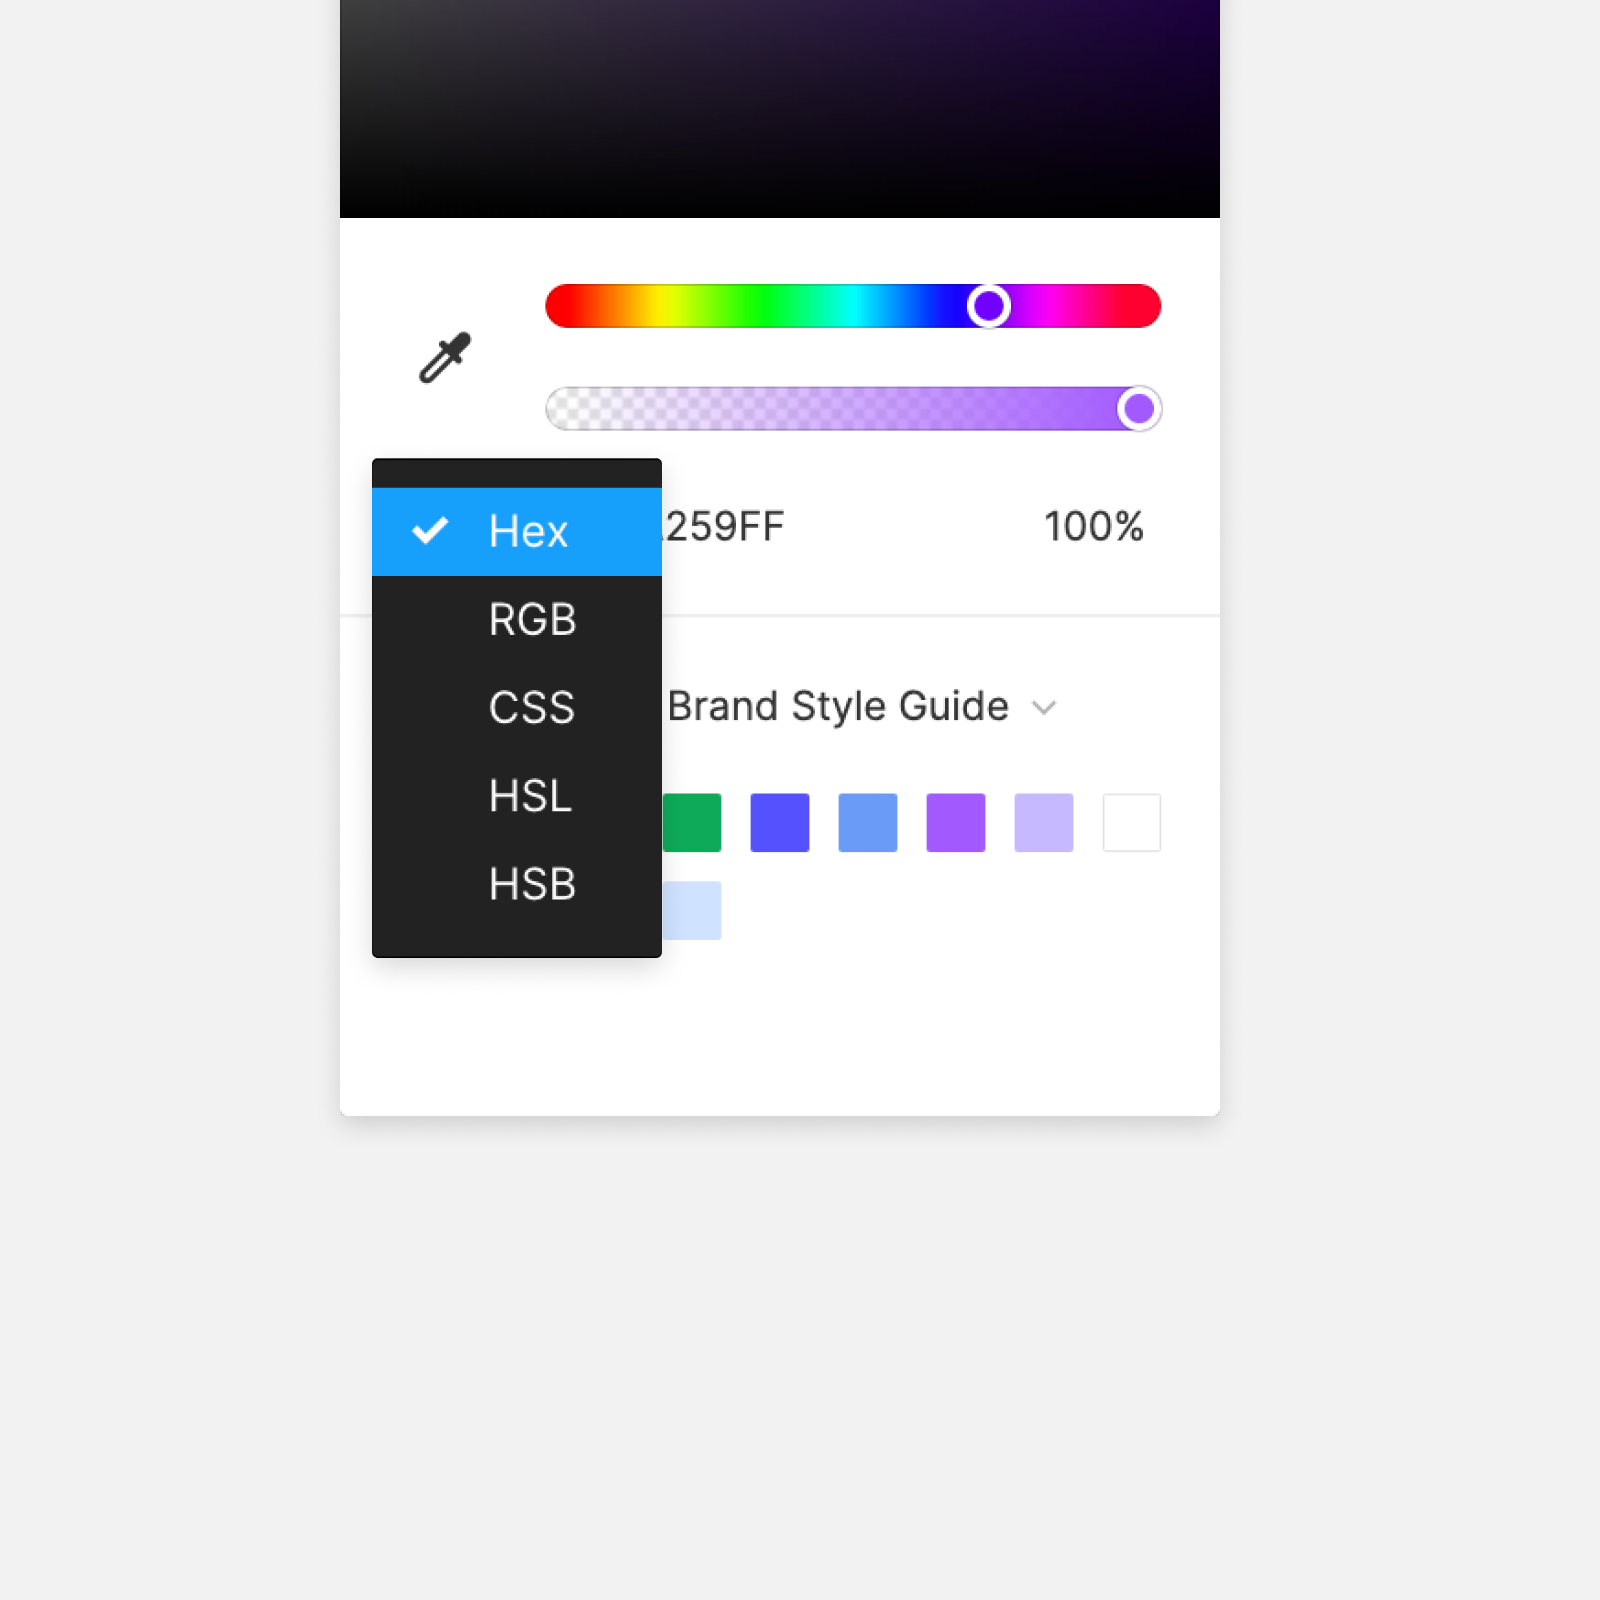 Image showing the color models available in the color picker